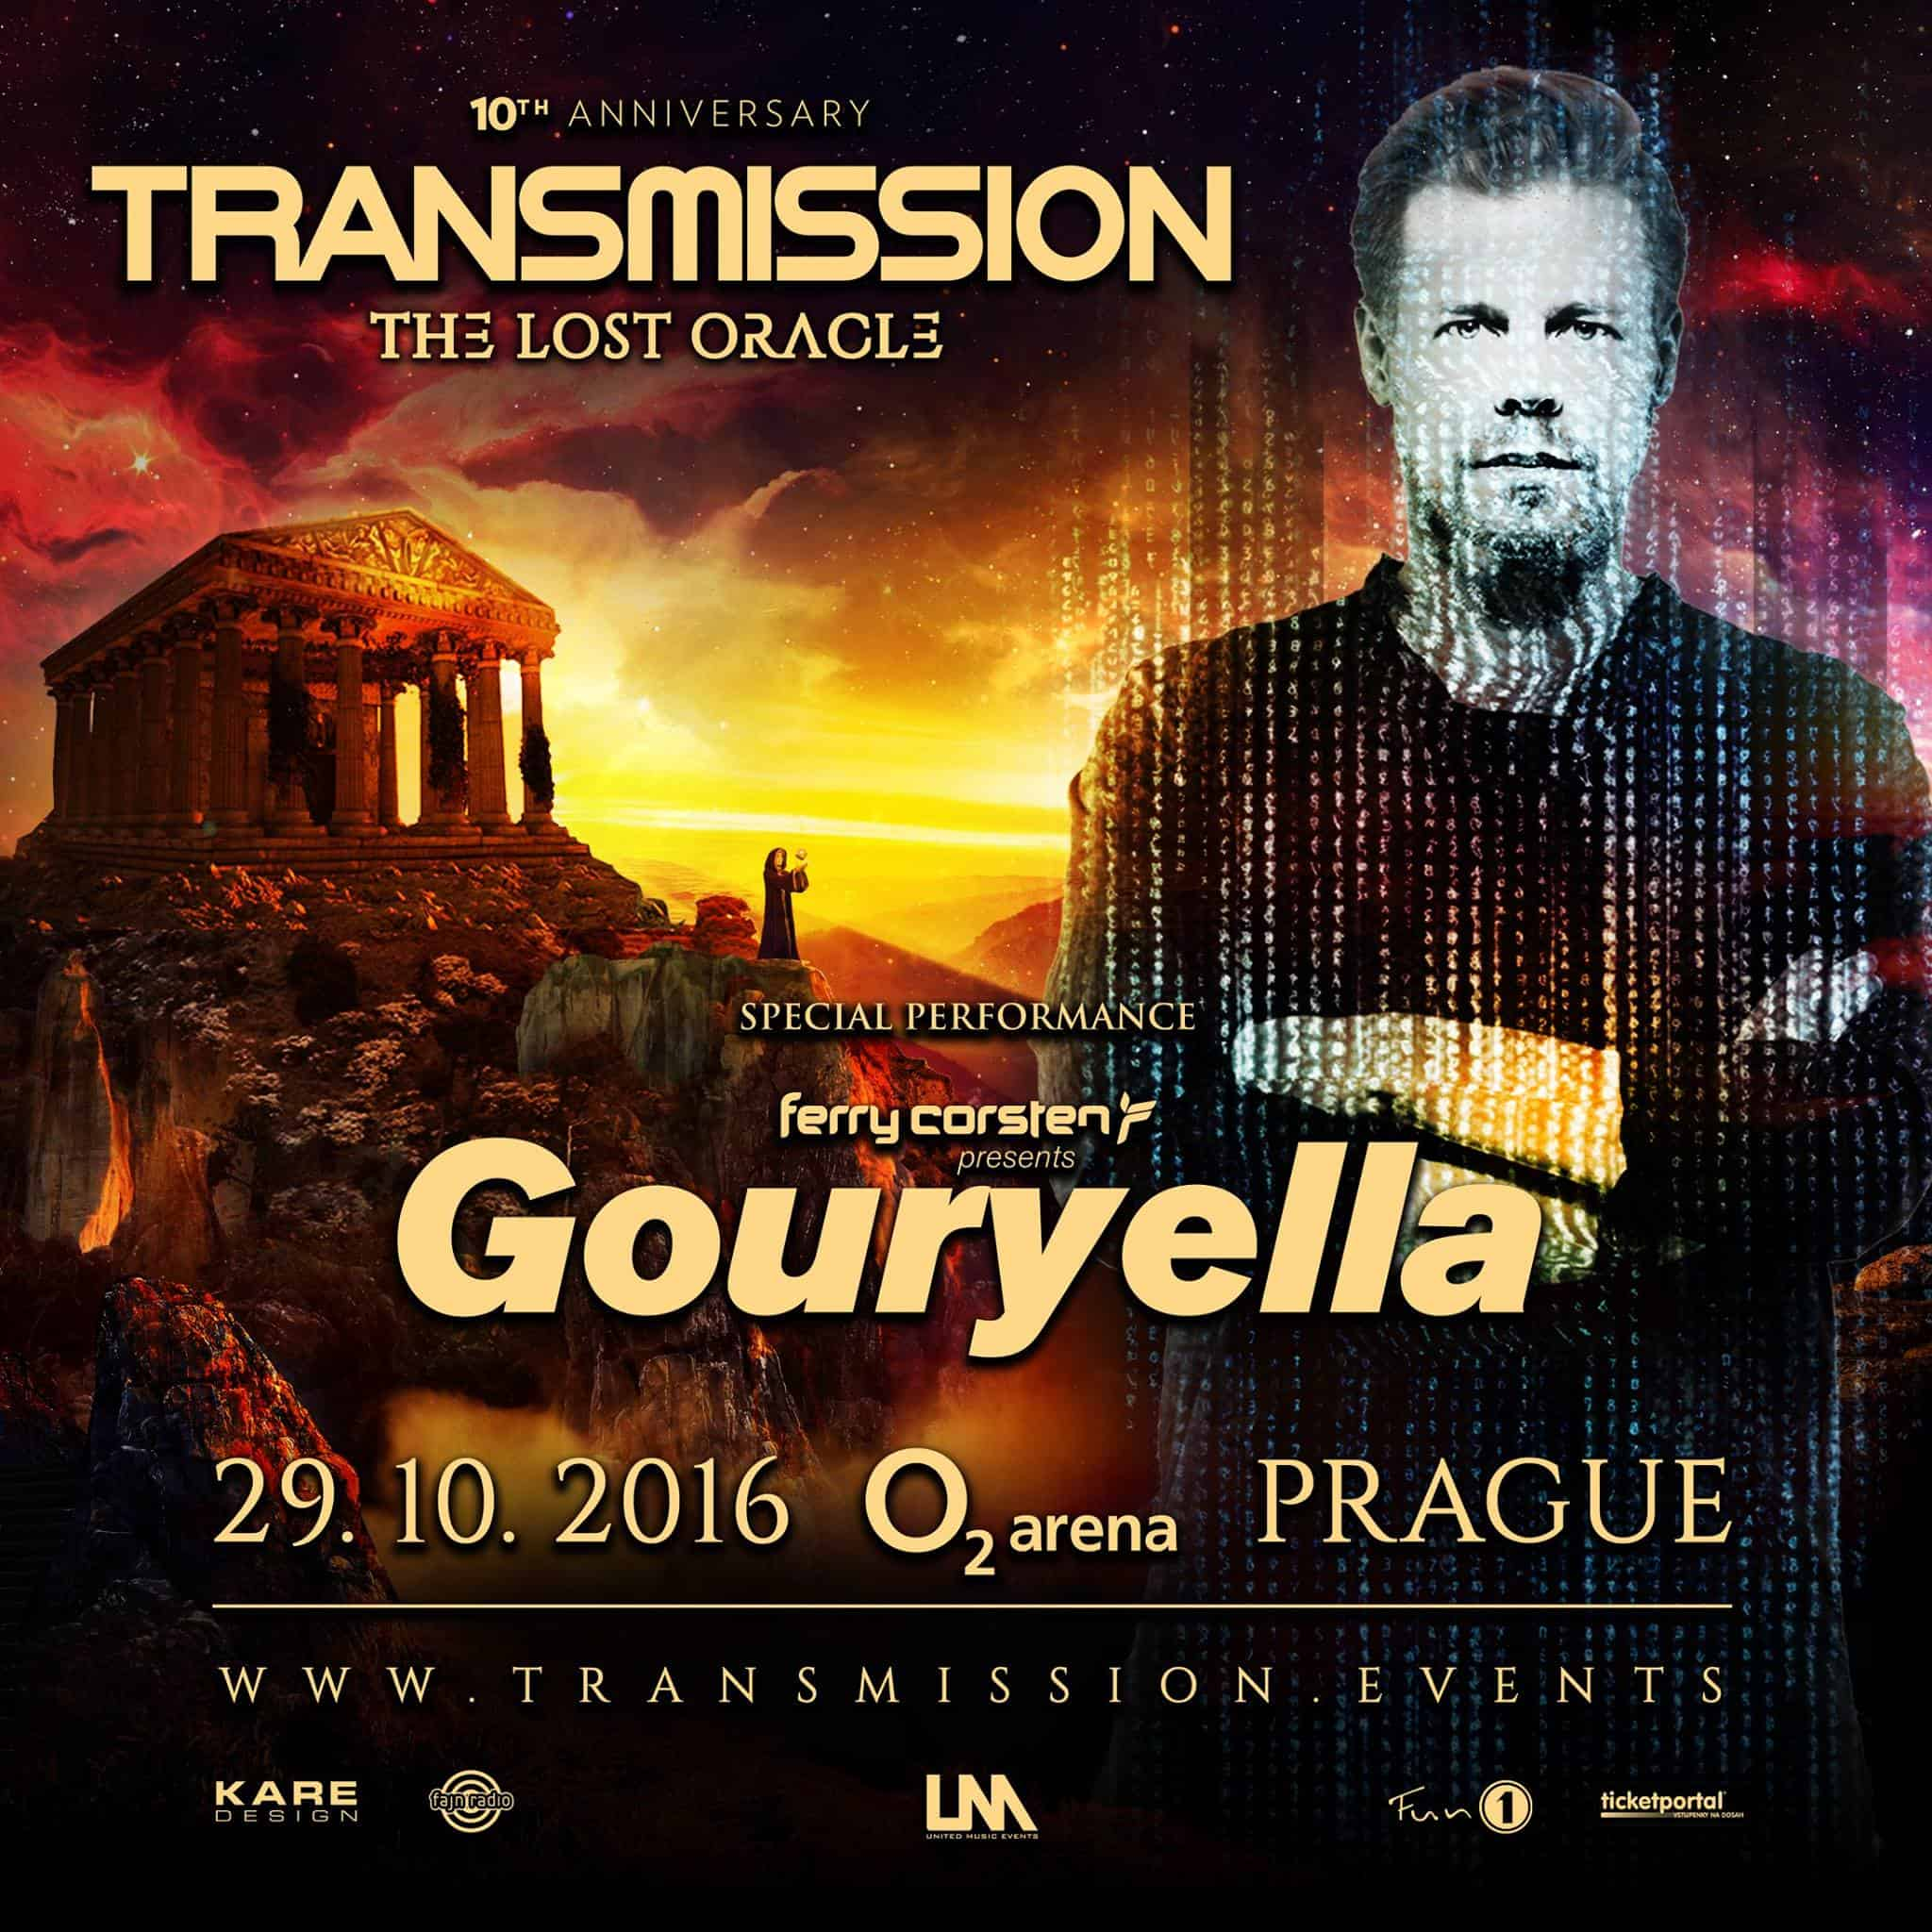 Gouryella live at Transmission - The Lost Oracle (29.10.2016) @ Prague, Czech Republic